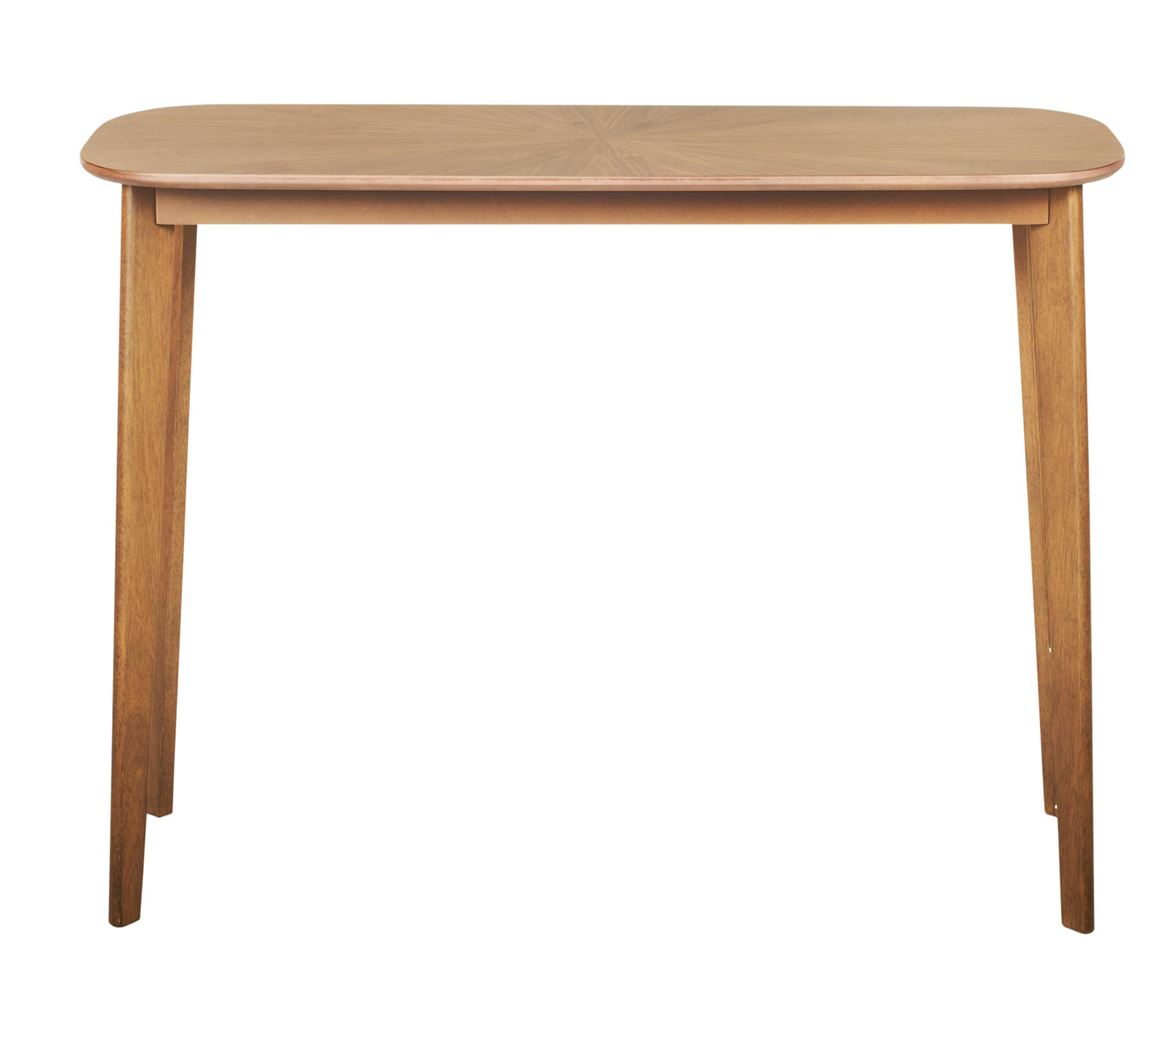 RAI Table murale naturel H 75 x Larg. 35 x Long. 100 cm_rai-table-murale-naturel-h-75-x-larg--35-x-long--100-cm